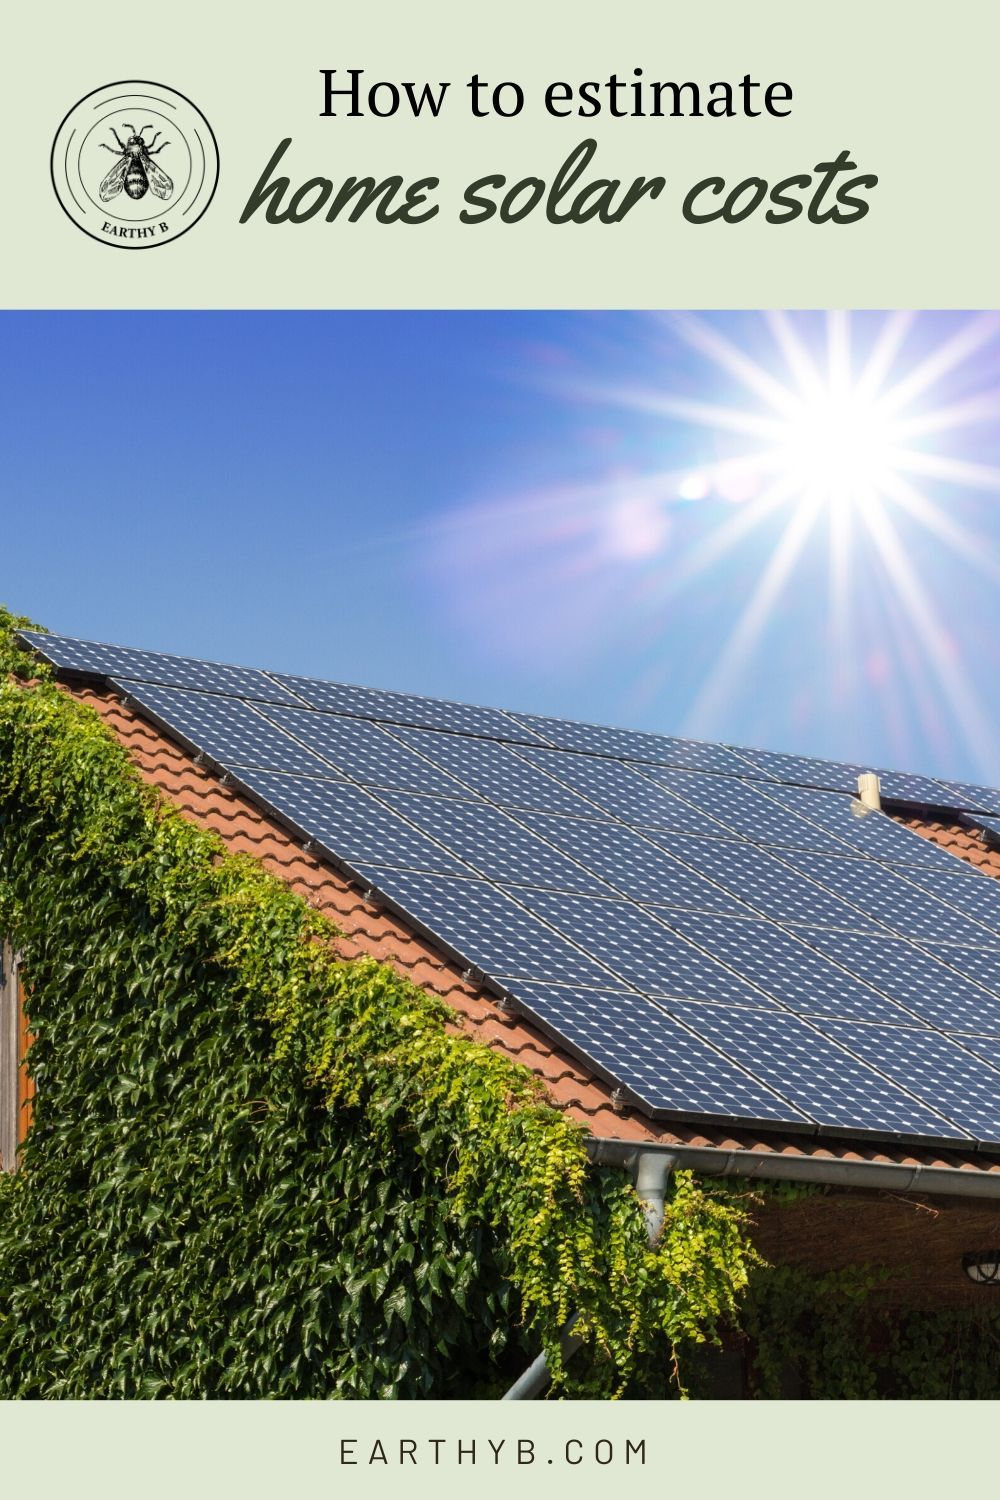 How To Estimate Home Solar Costs In 2020 In 2020 Solar Cost Solar Panel Cost Solar